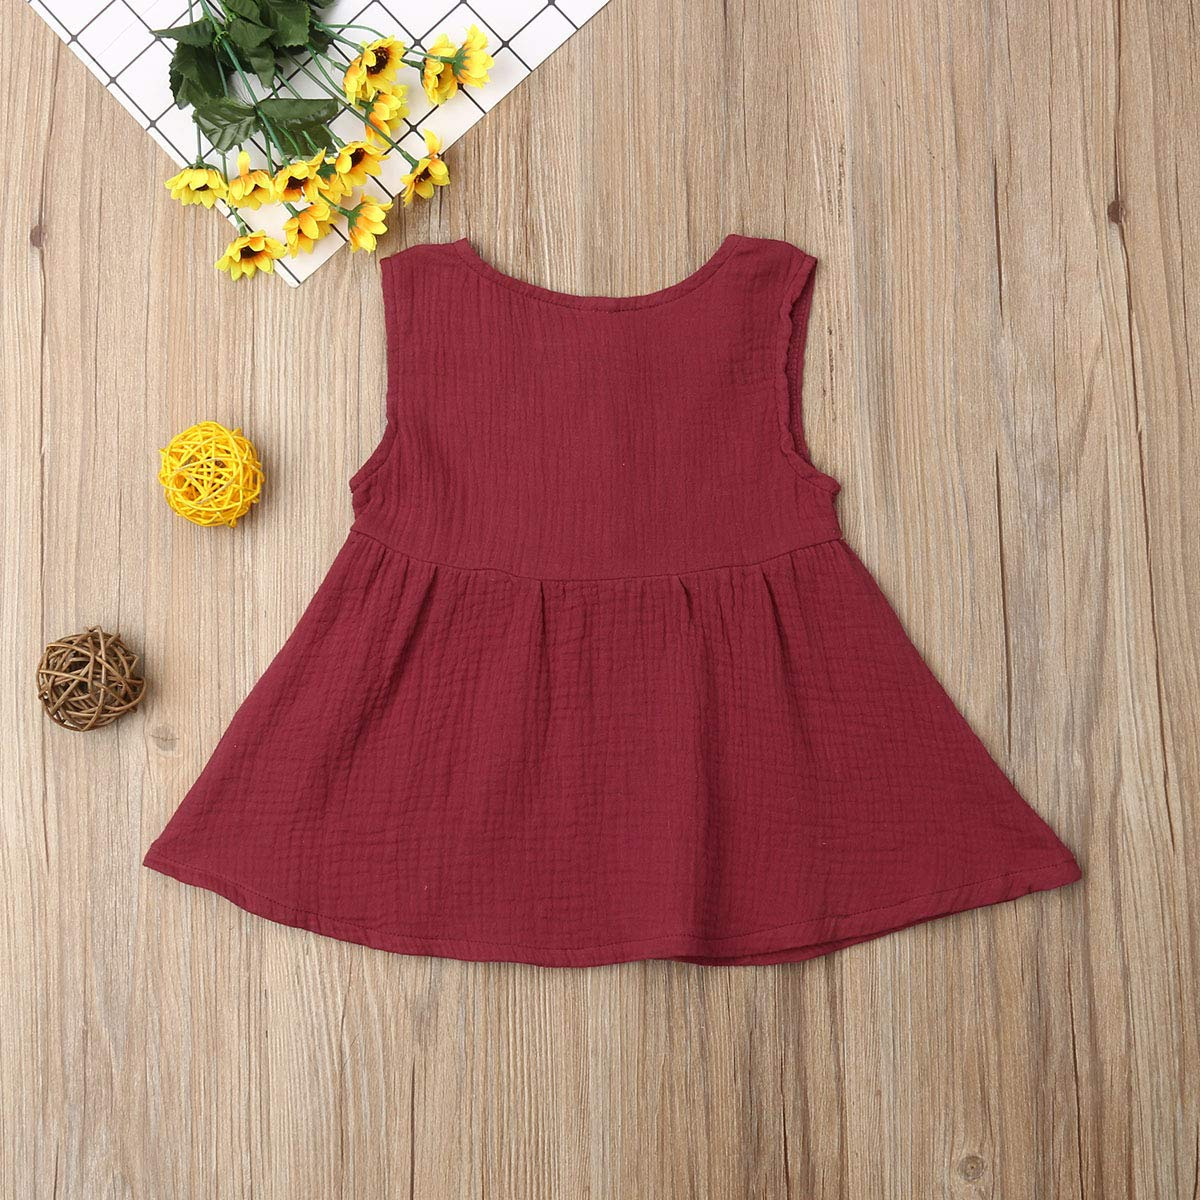 Tempura Toddler Kids Baby Girls Sleeveless Color Solid Vest Dress with Button Casual Princess Party Dress